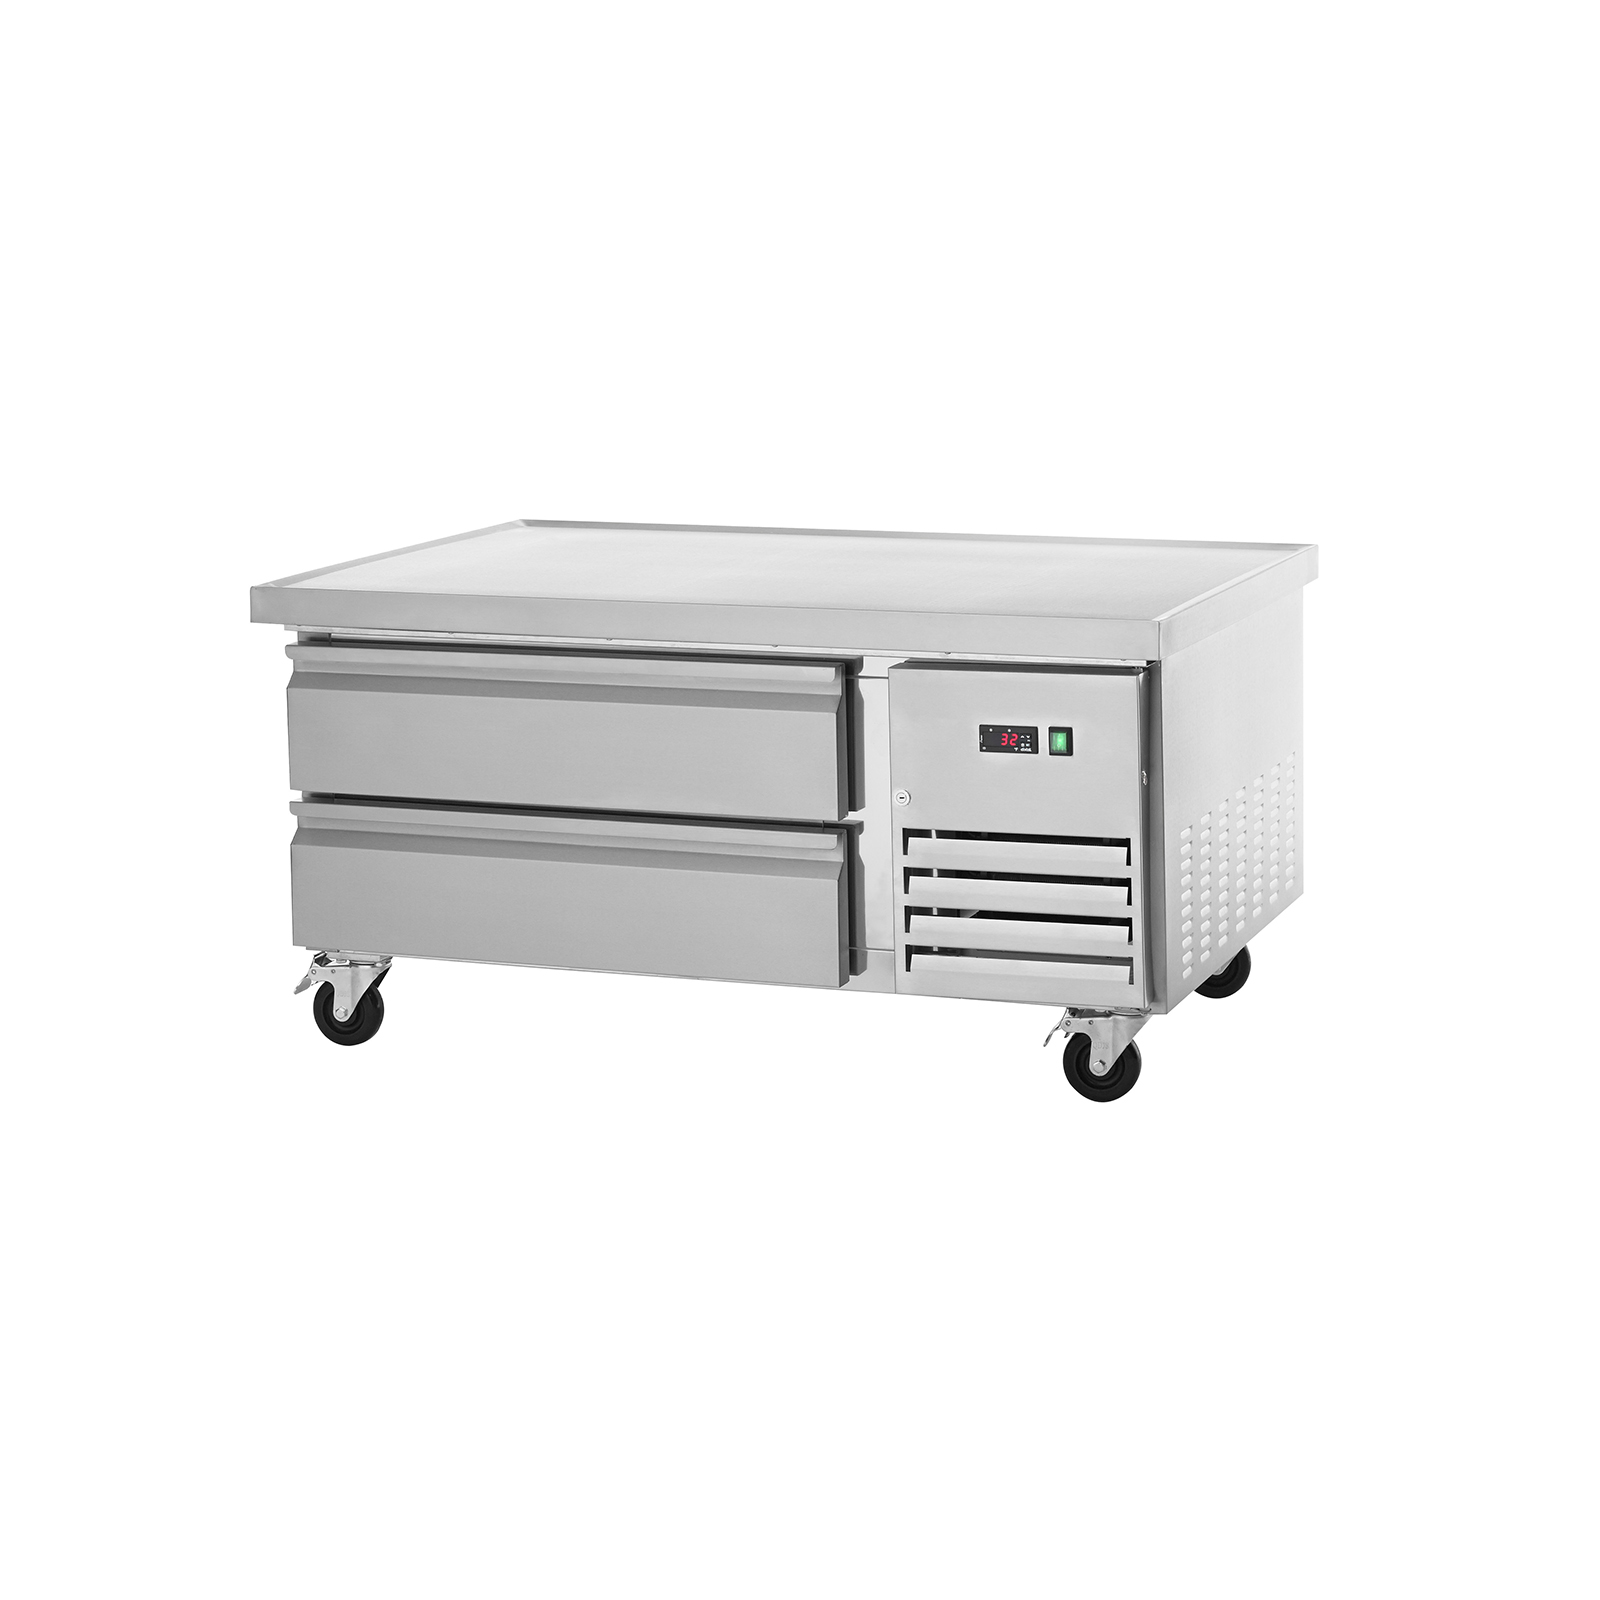 Arctic Air ARCB48 equipment stand, refrigerated base